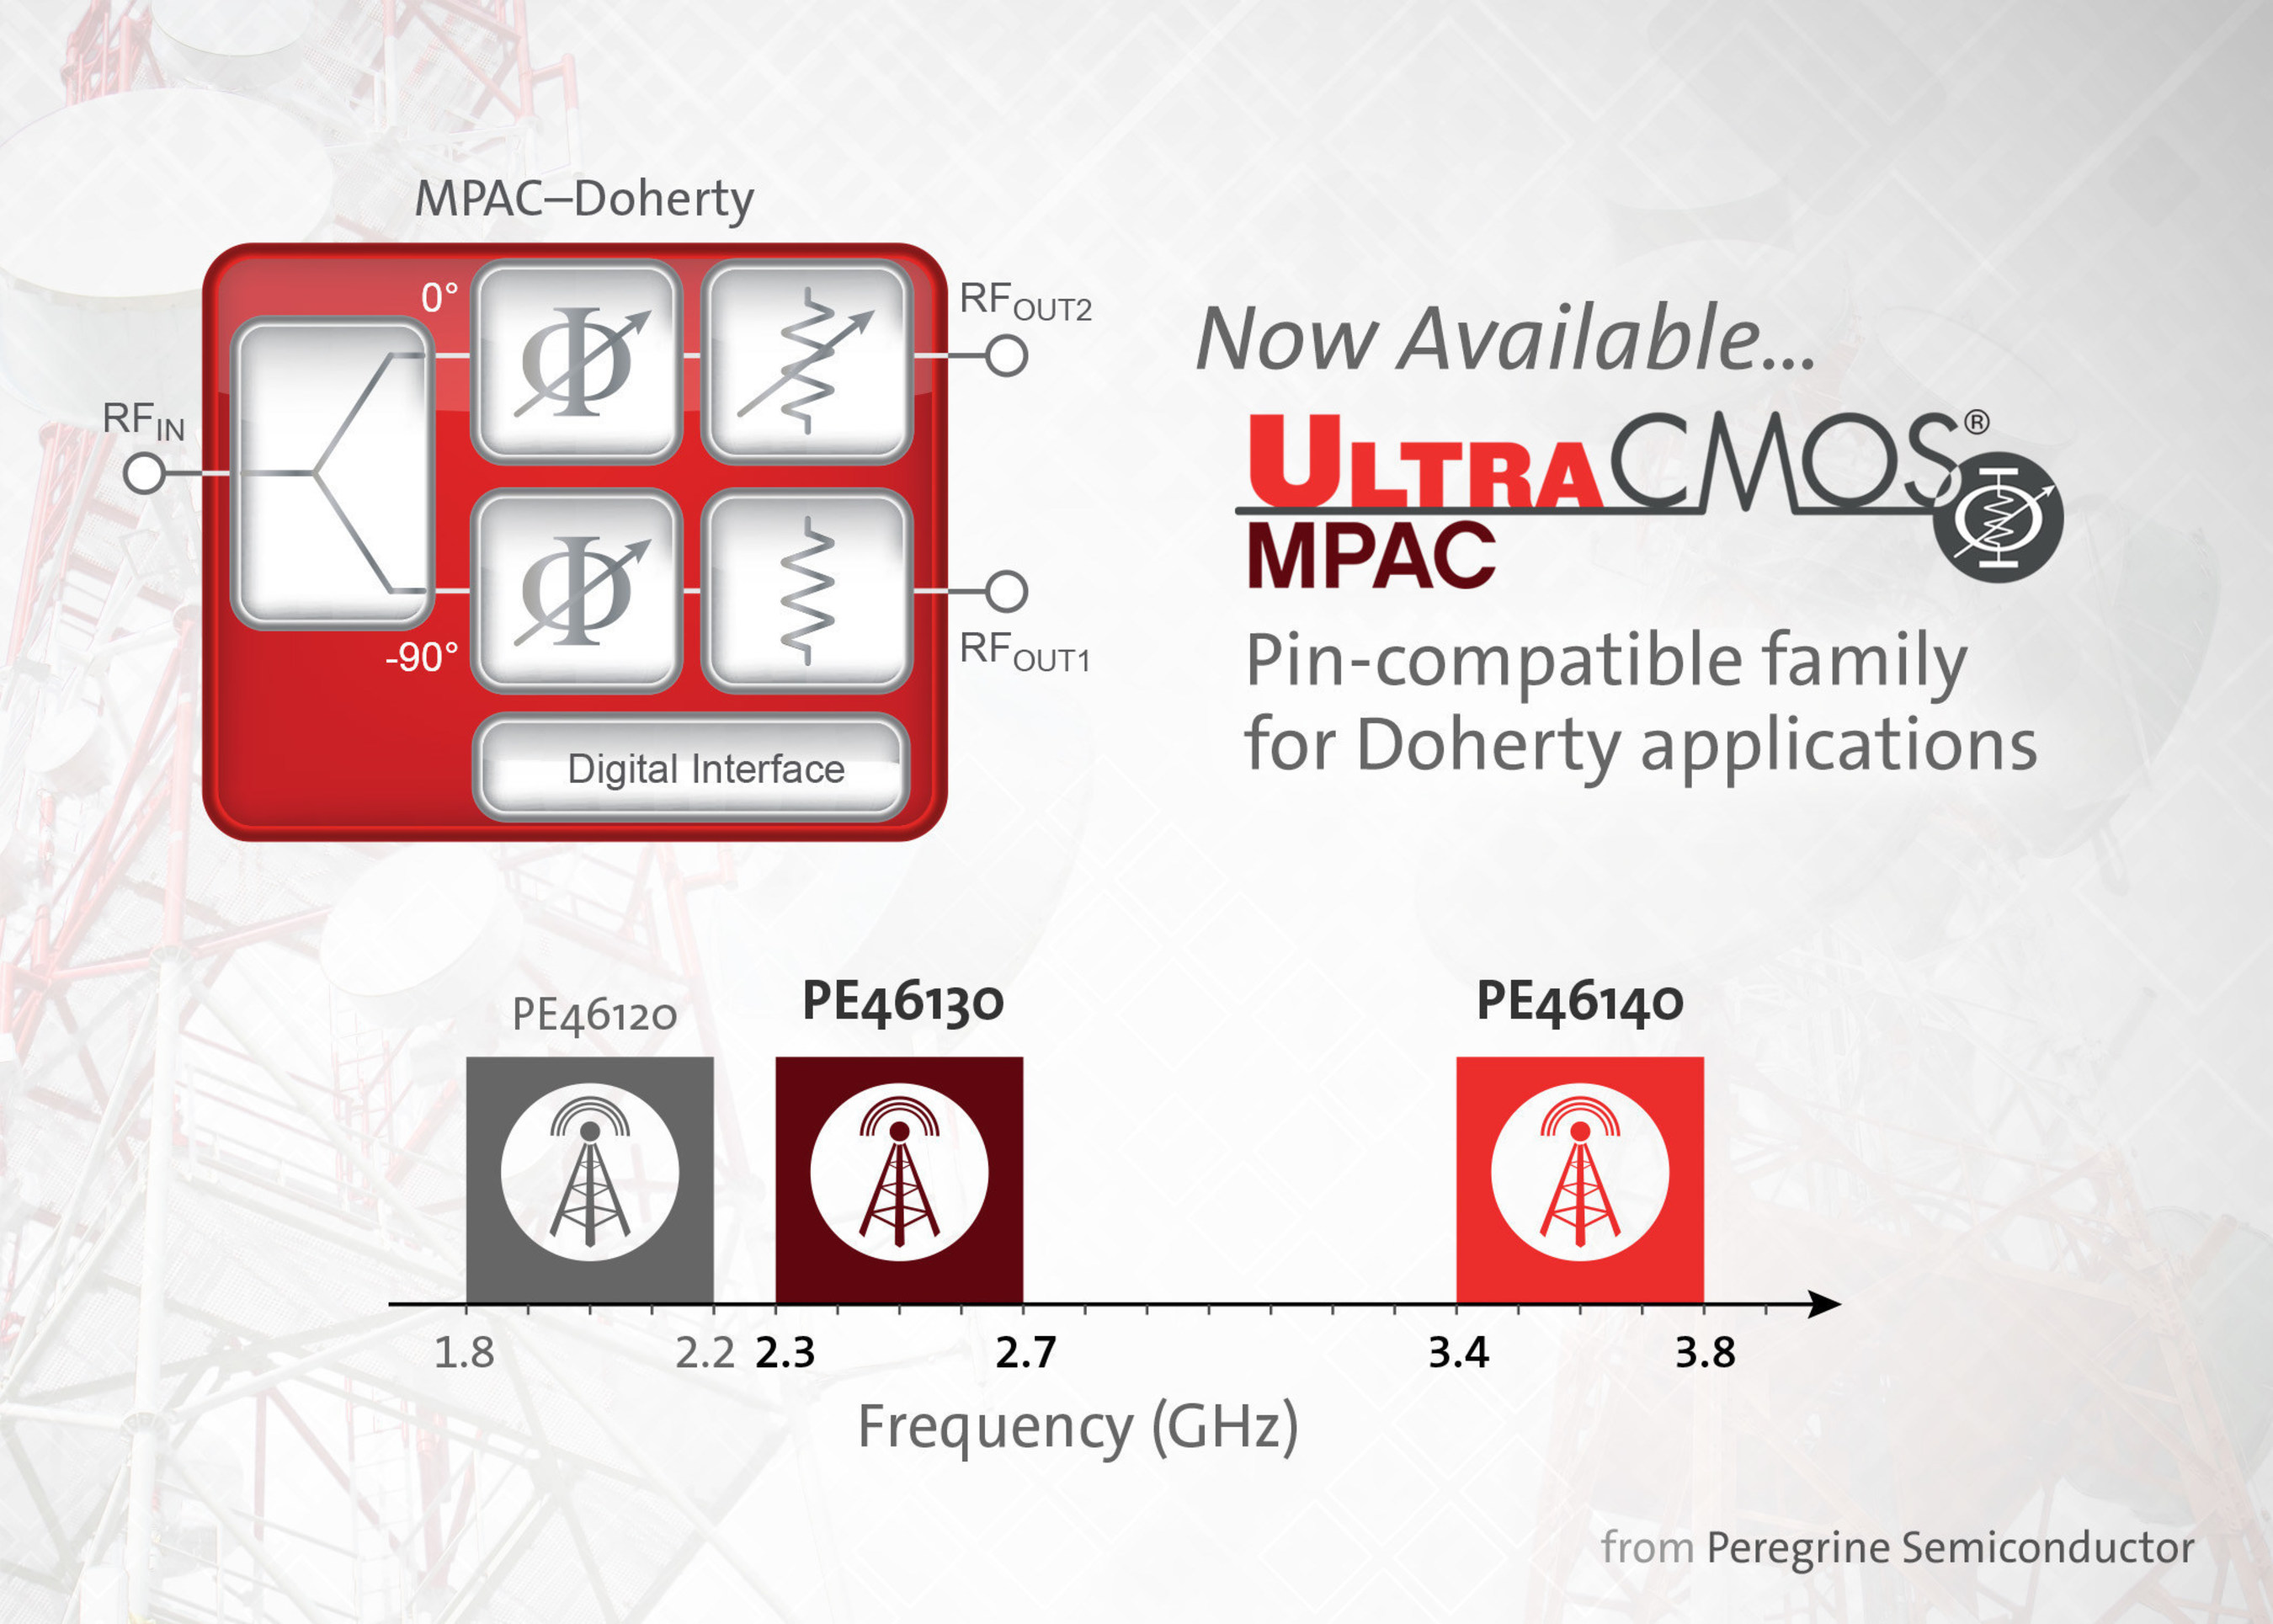 Peregrine Semiconductor expands the MPAC-Doherty product family to support gallium nitride (GaN) power amplifier frequencies.